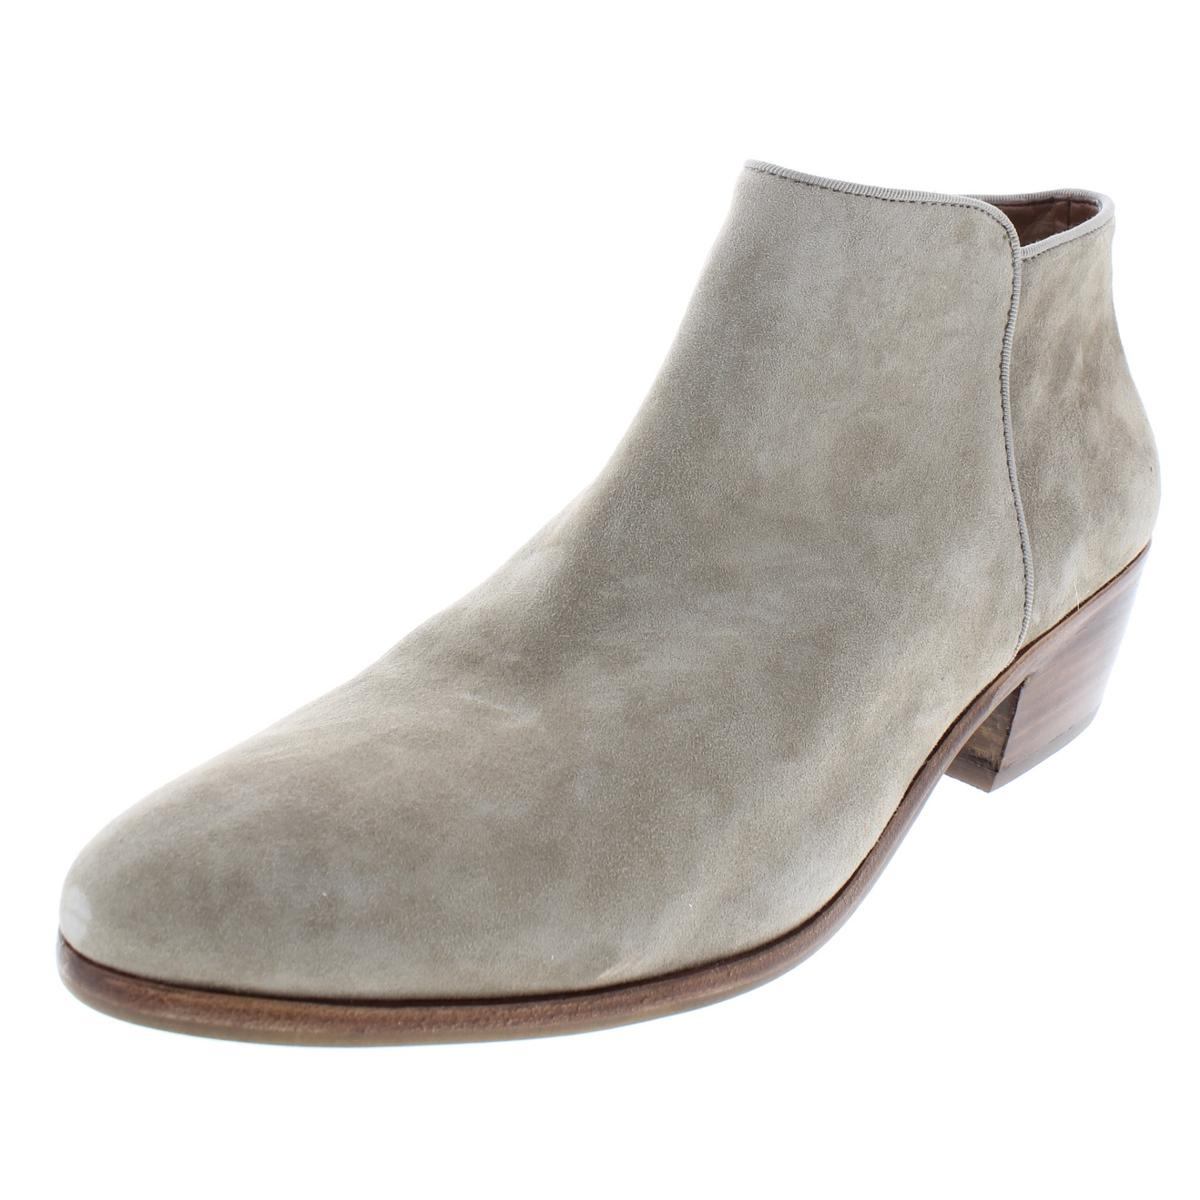 3a52d863e4694e Details about Sam Edelman Womens Petty Taupe Suede Booties Shoes 10 Medium  (B